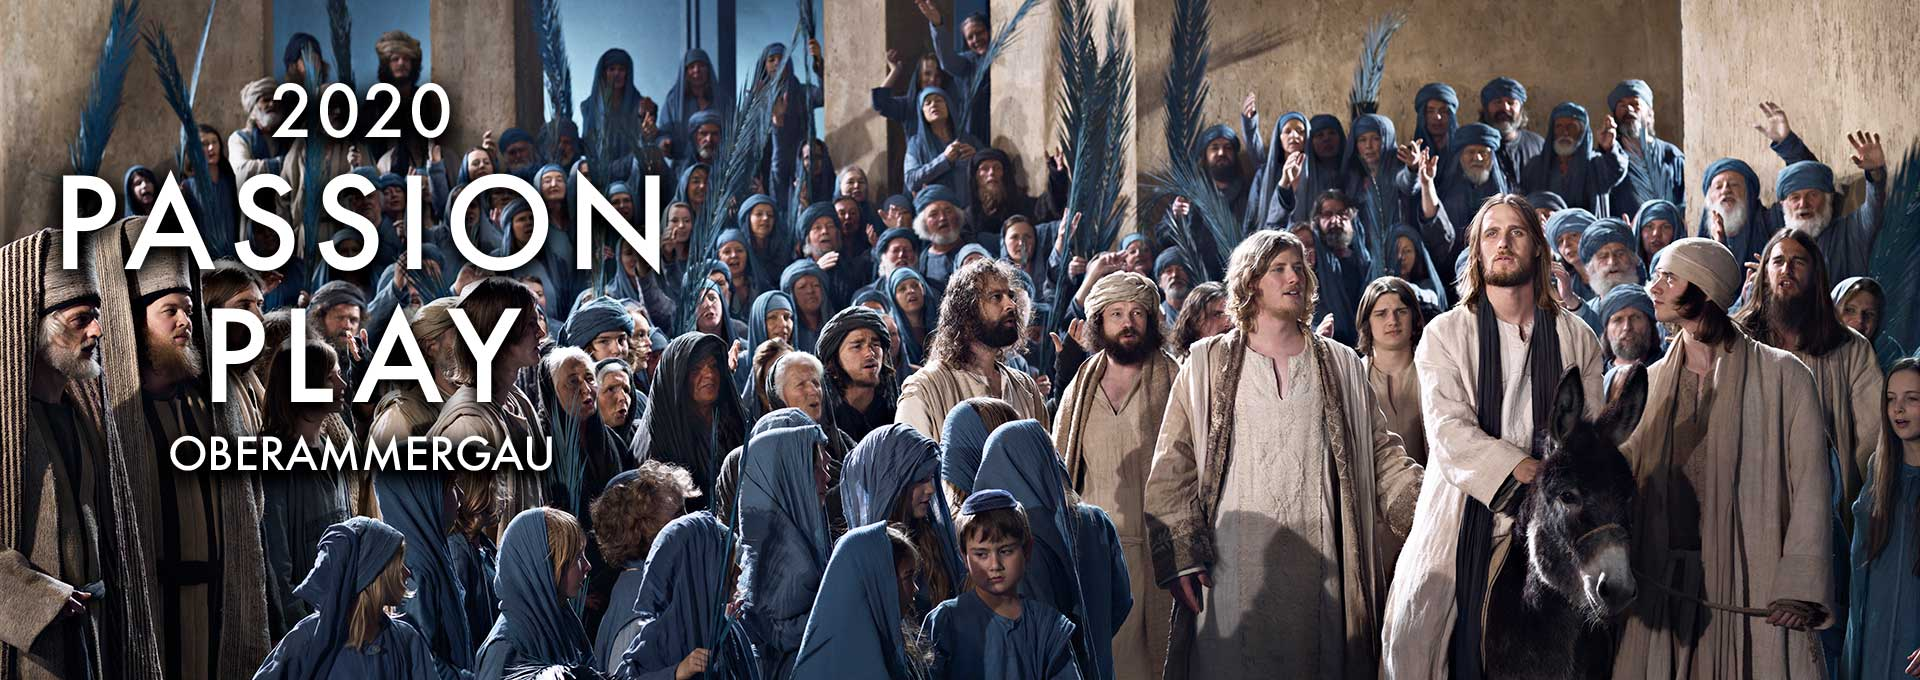 Passion Play 2020 Oberammergau